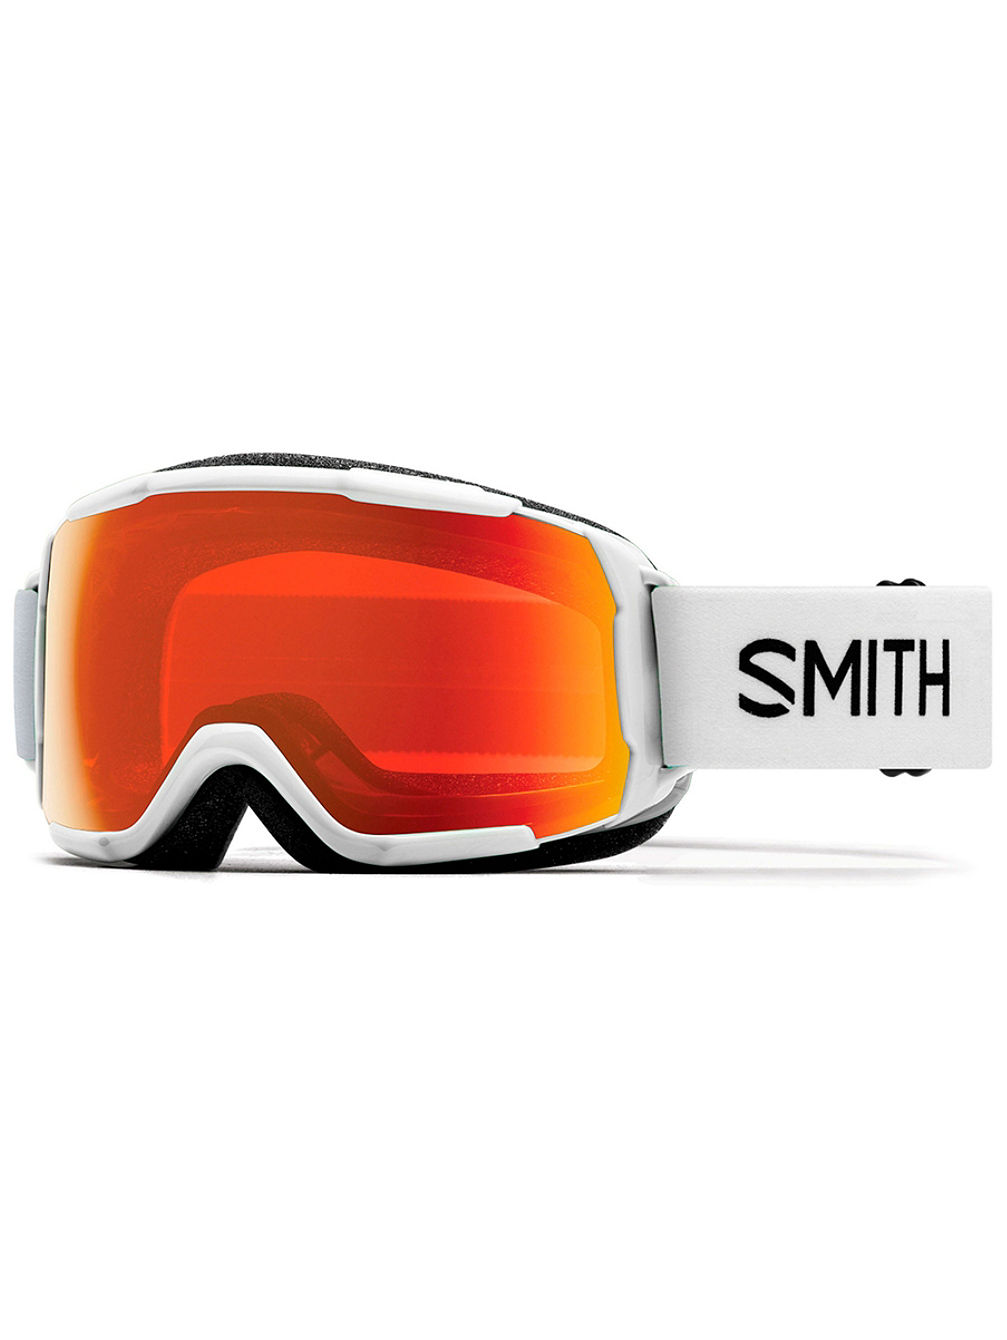 Grom White Goggle